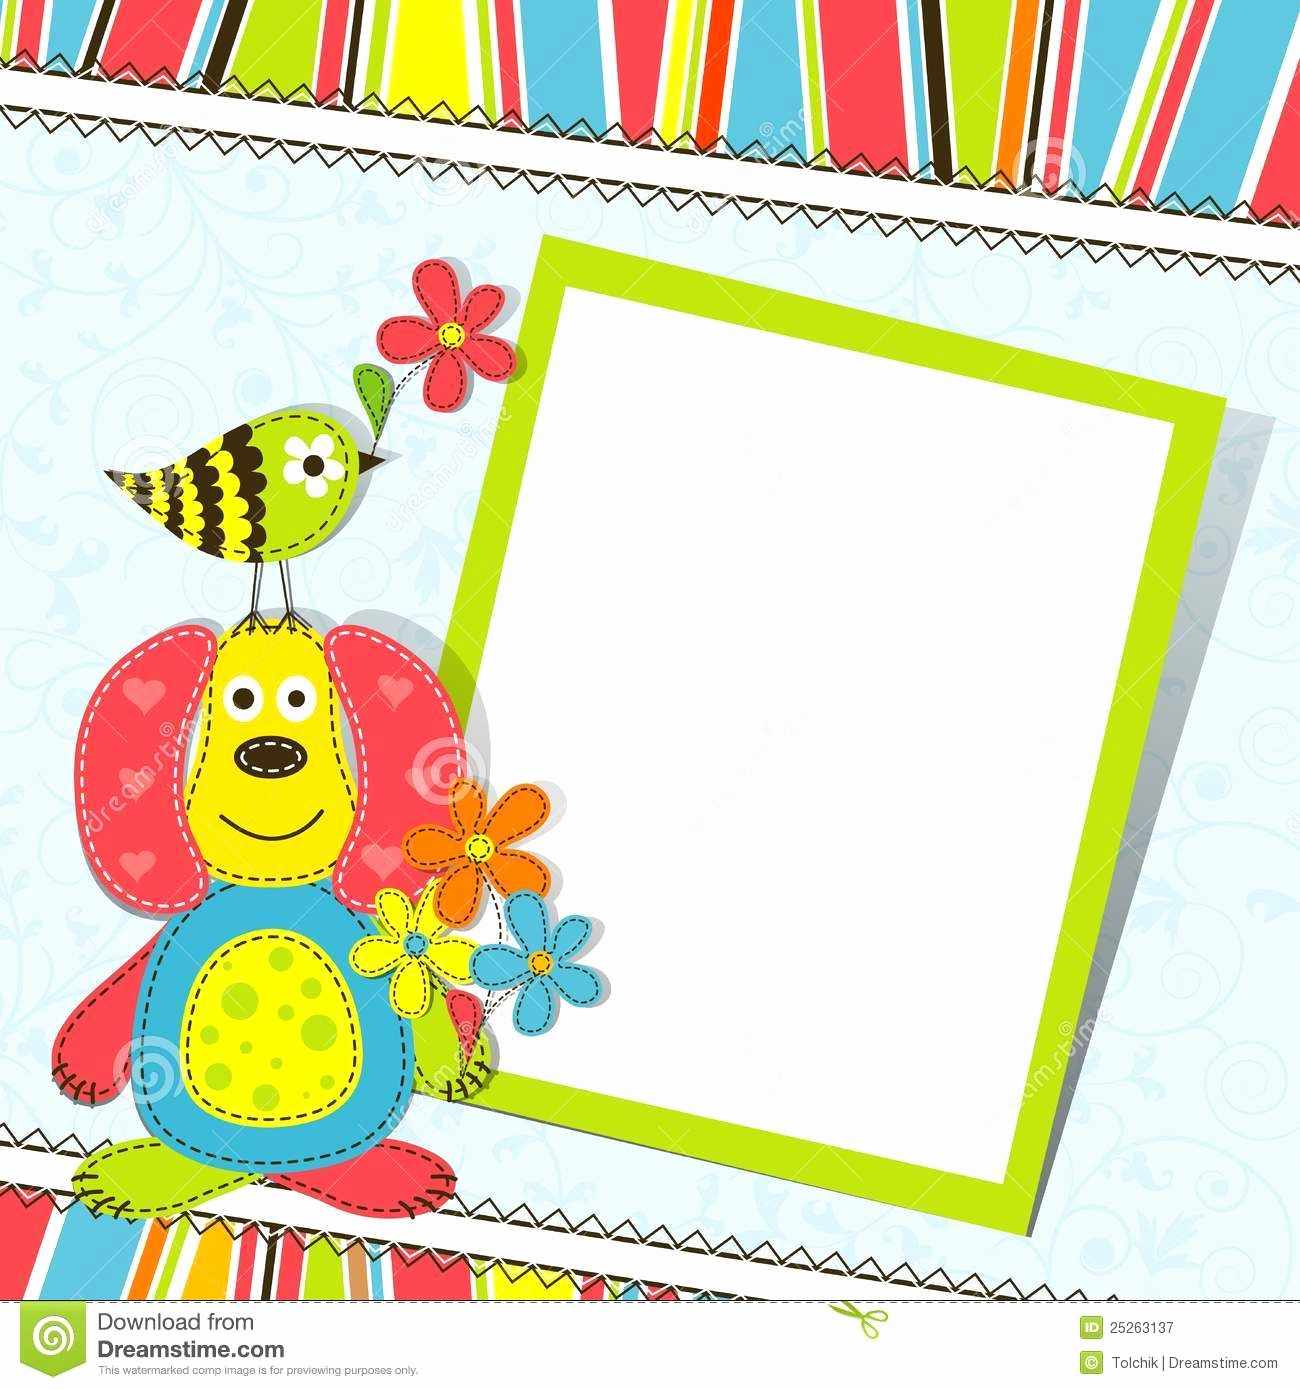 Free Greeting Card Templates Unique Template for Birthday Card My Birthday